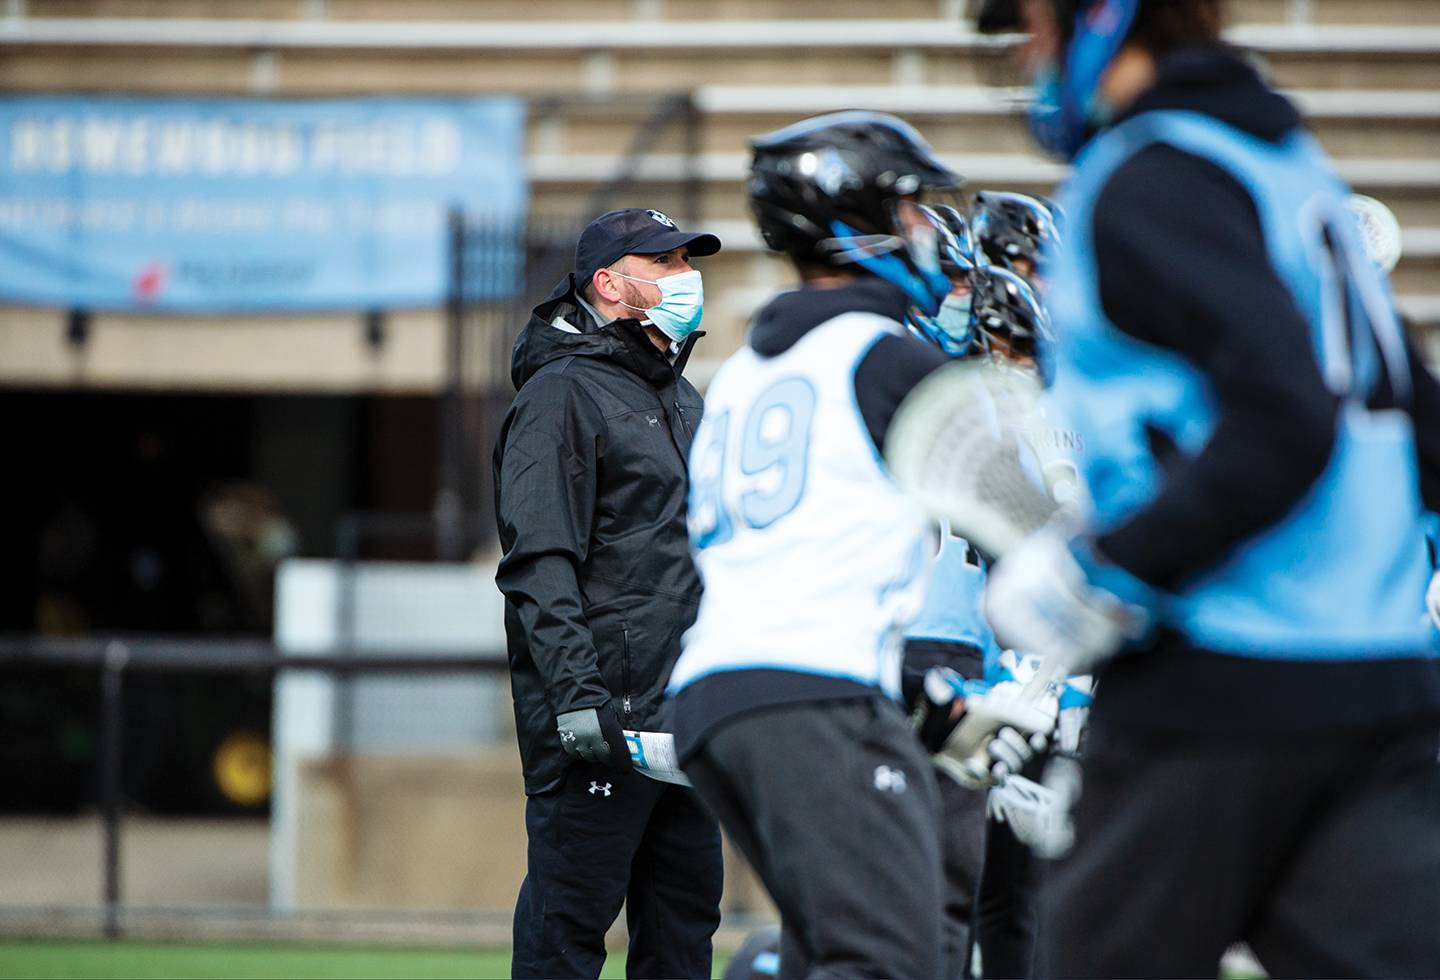 Coach Pete Milliman, wearing a face mask, watches lacrosse practice